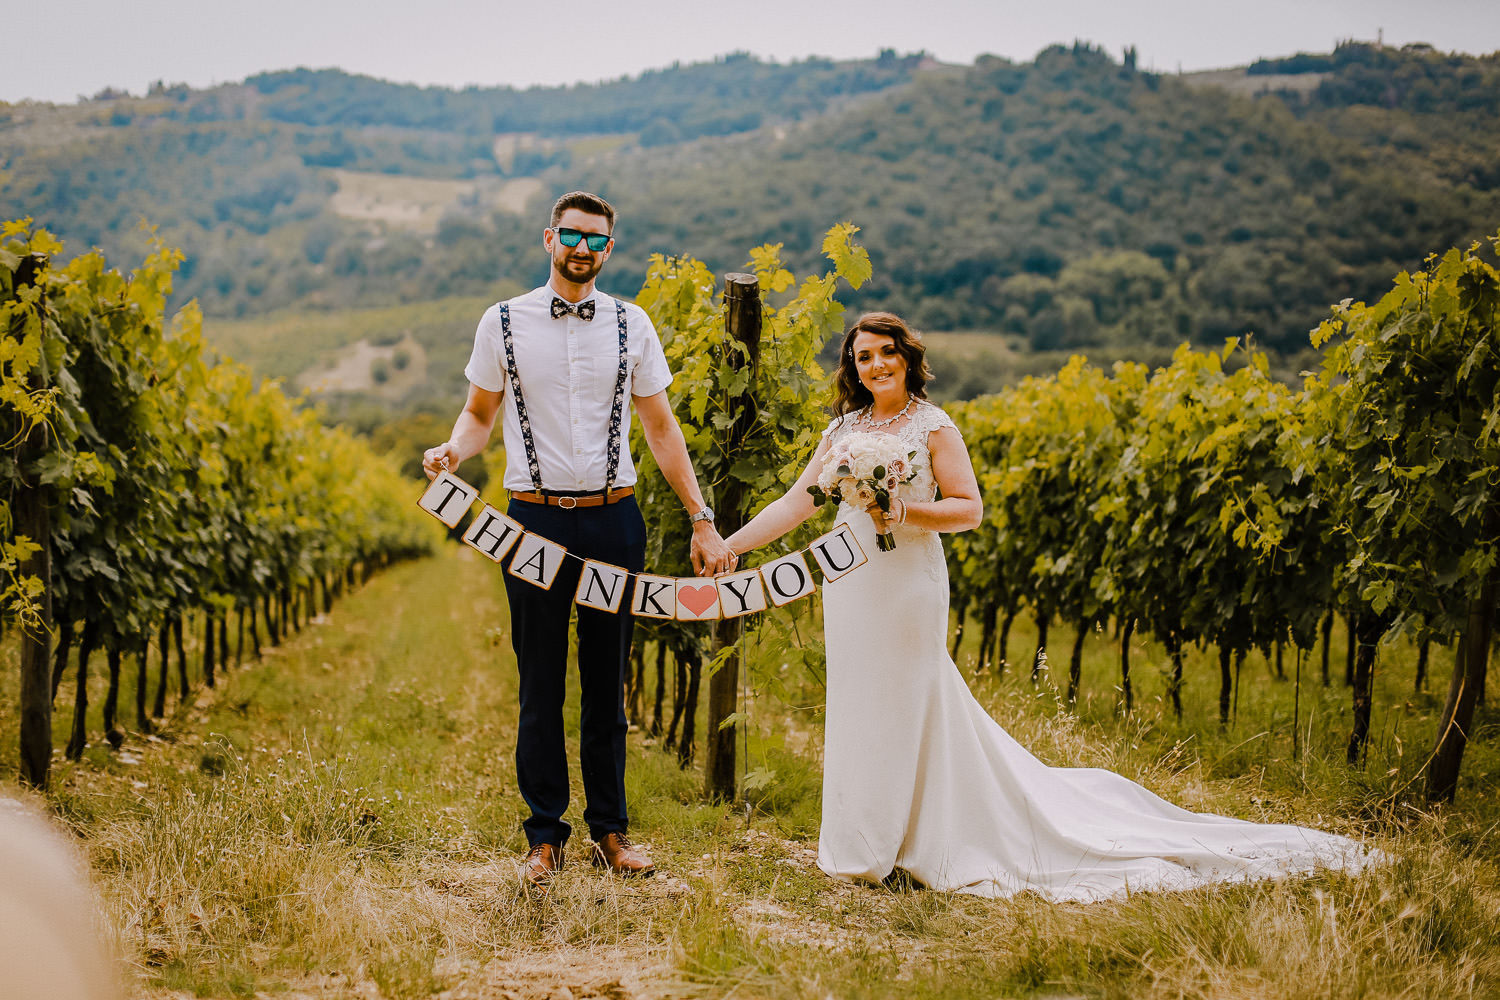 Bride and Groom in Tuscany vine yards